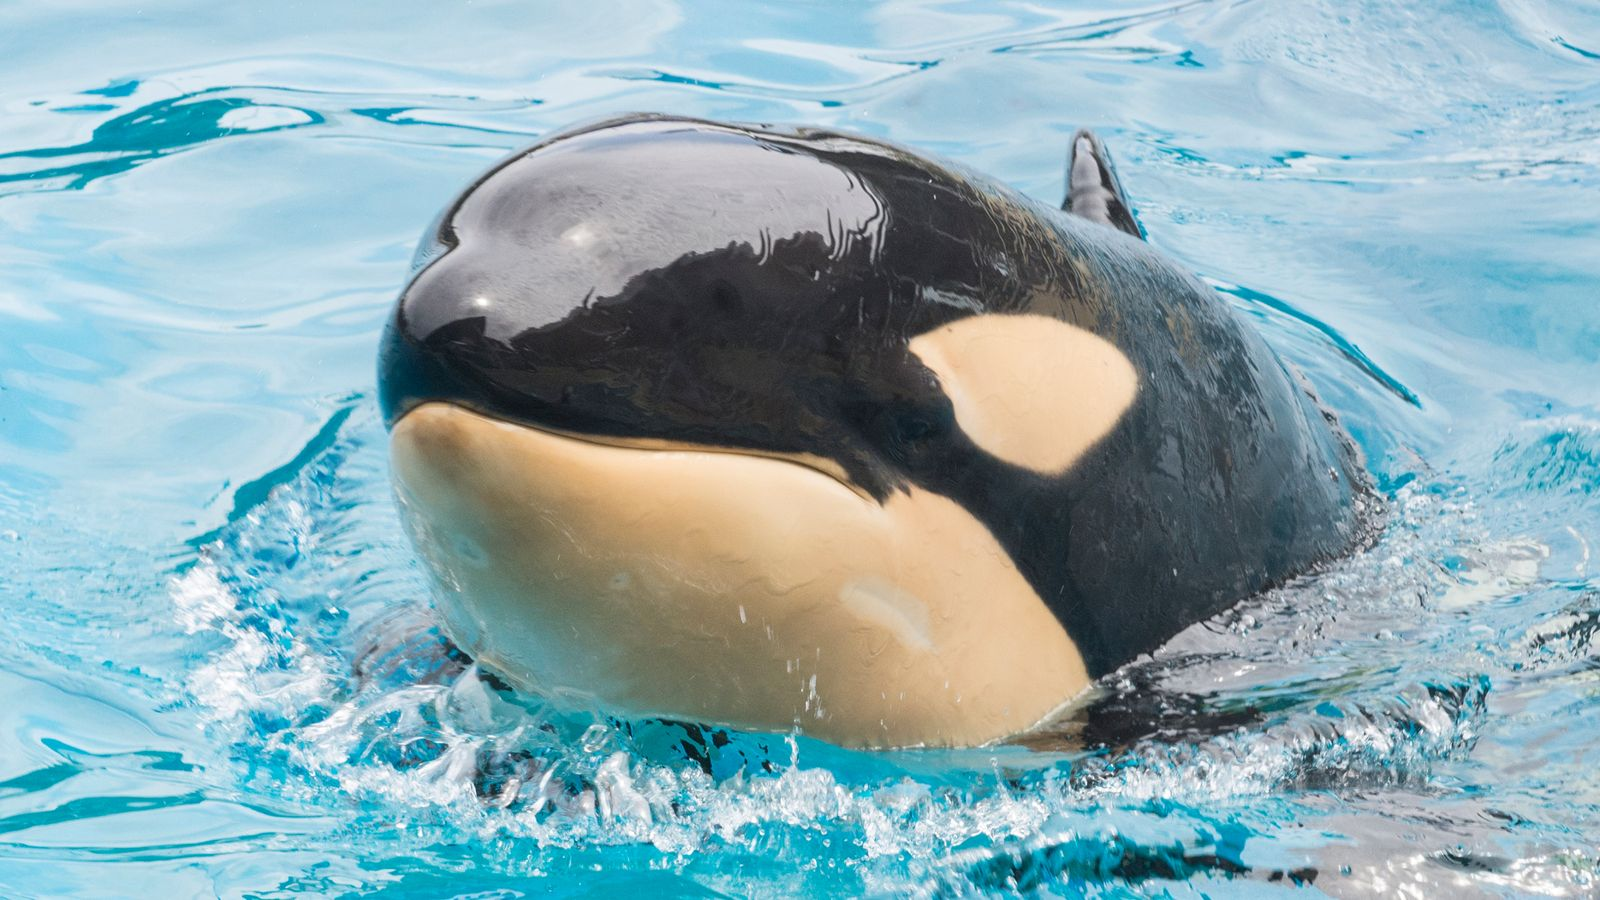 Amaya the Orca died at Sea World San Diego in the US.